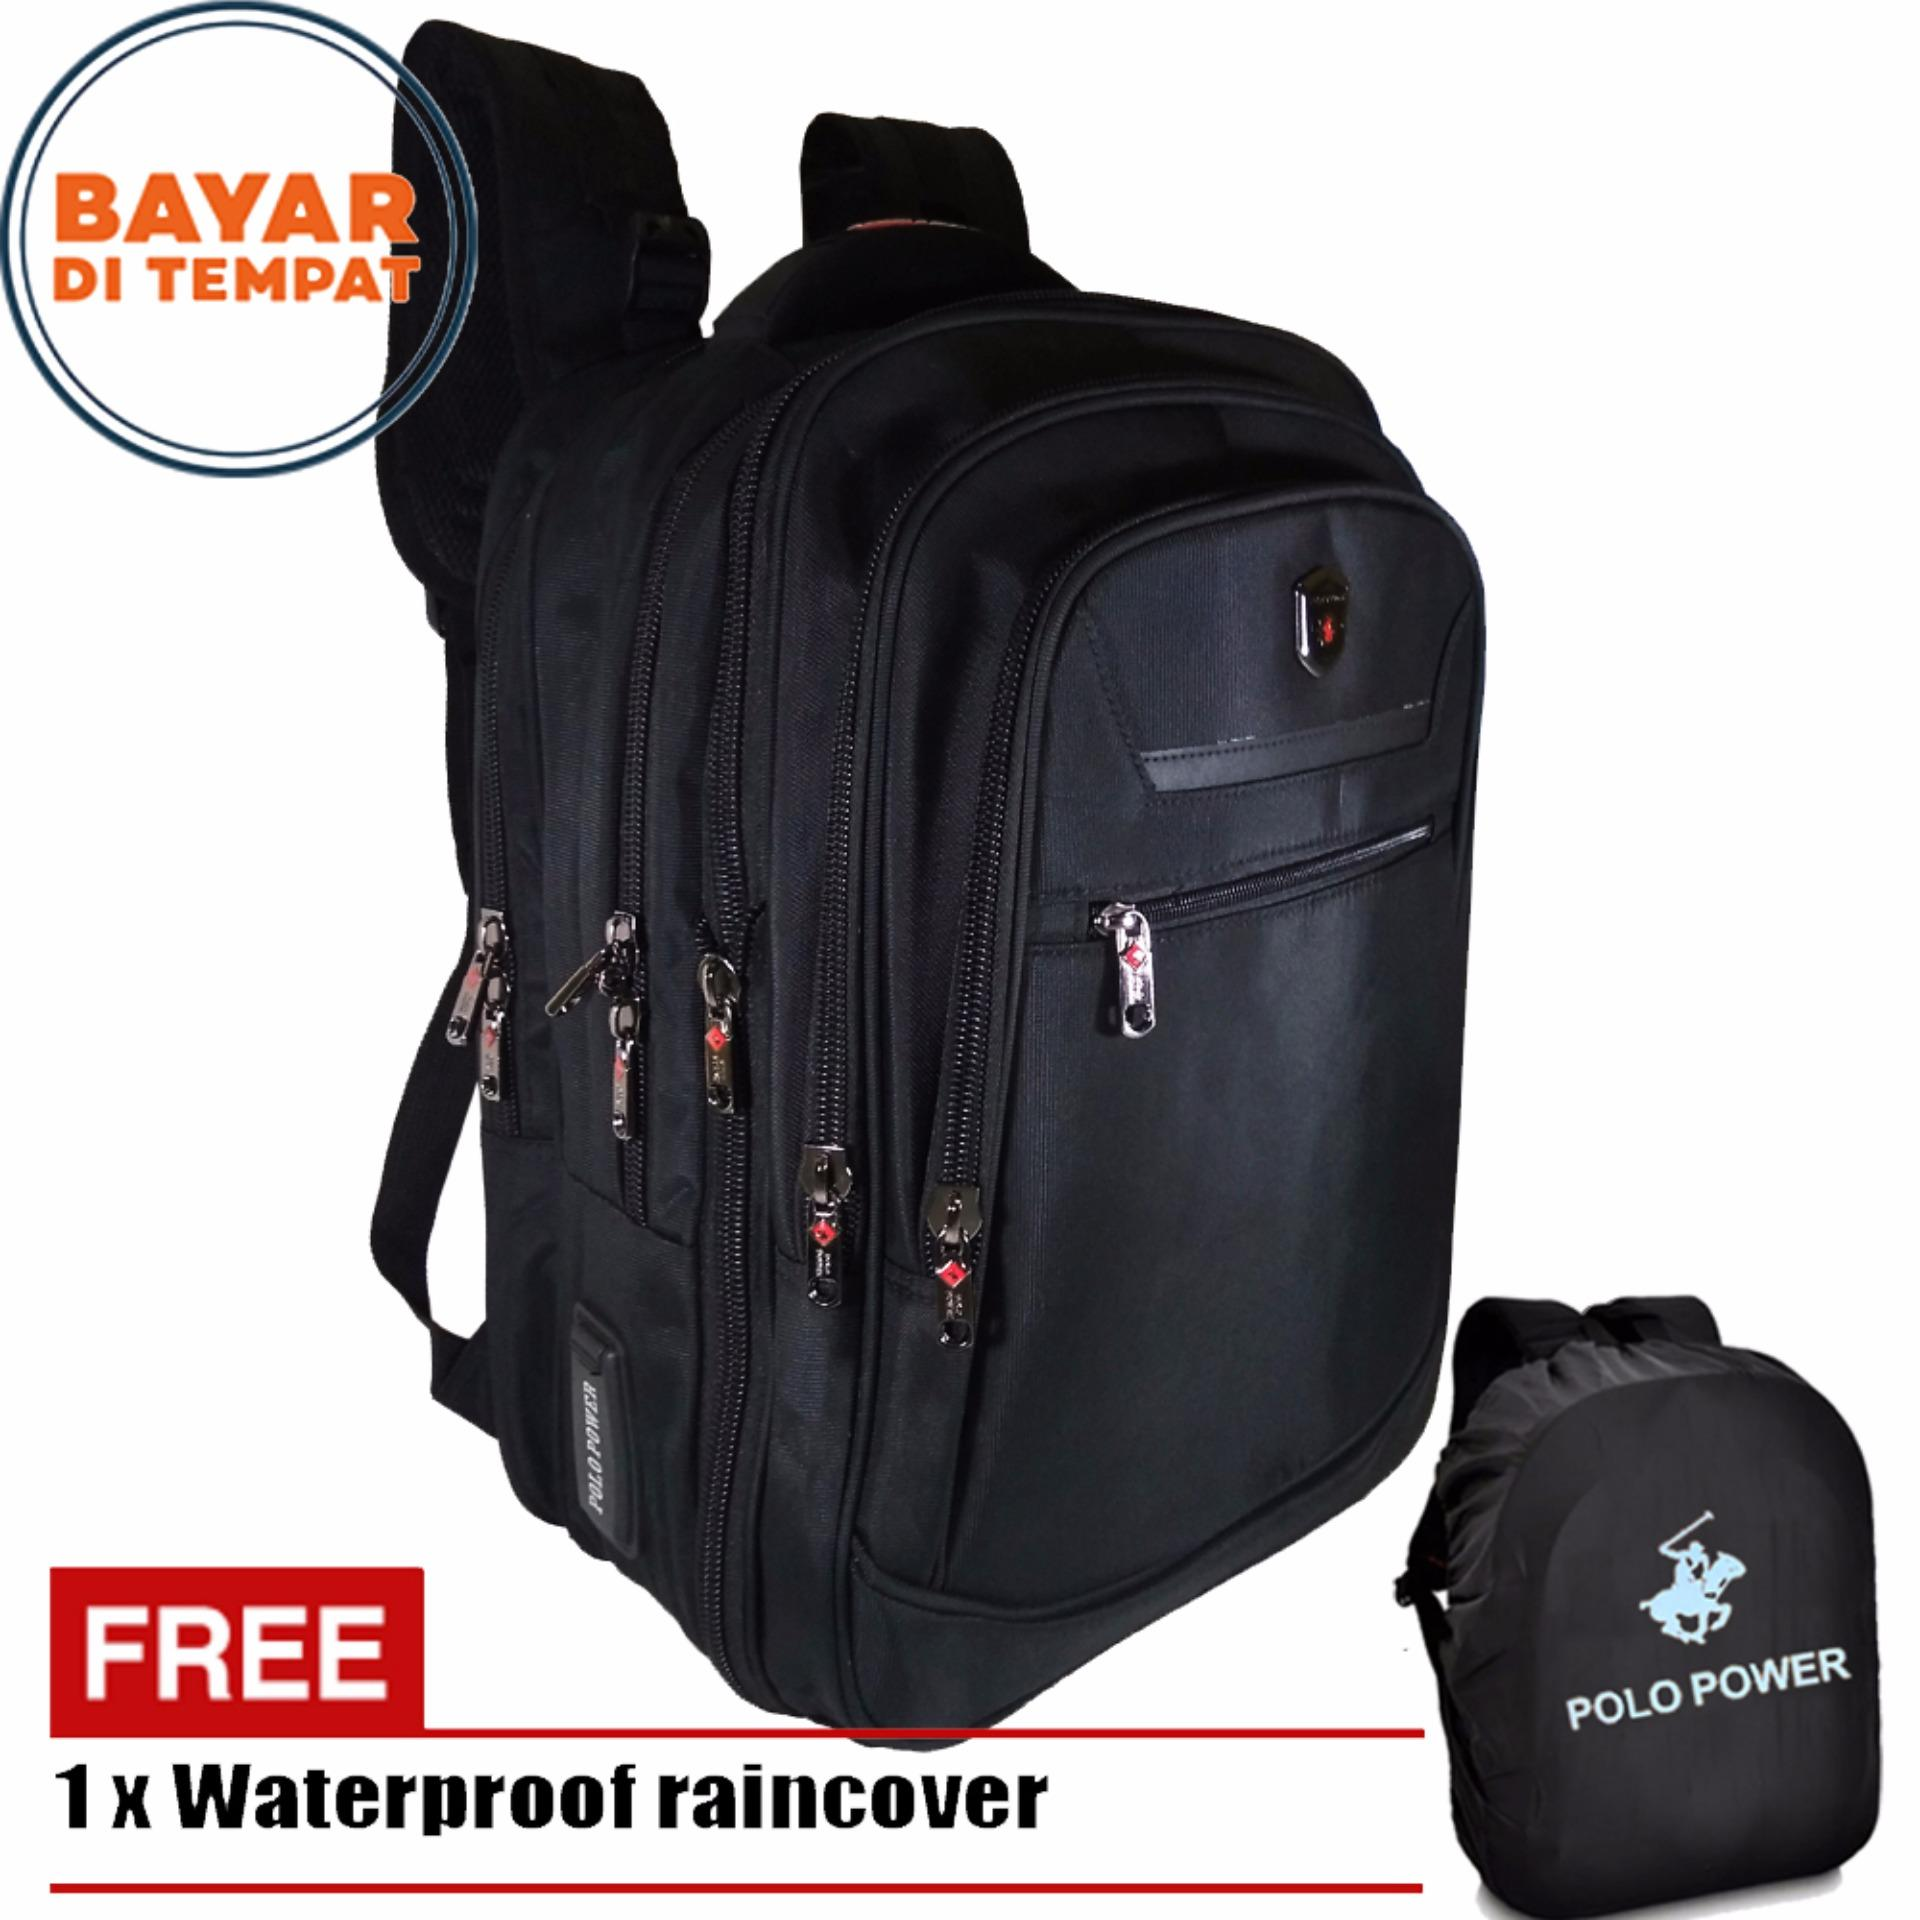 Toko Jual Polo Power Backpack Expandable Import Laptop Compartemen Ransel Milano Tas Pria 18 Inchi 185003 Highest Spec Original